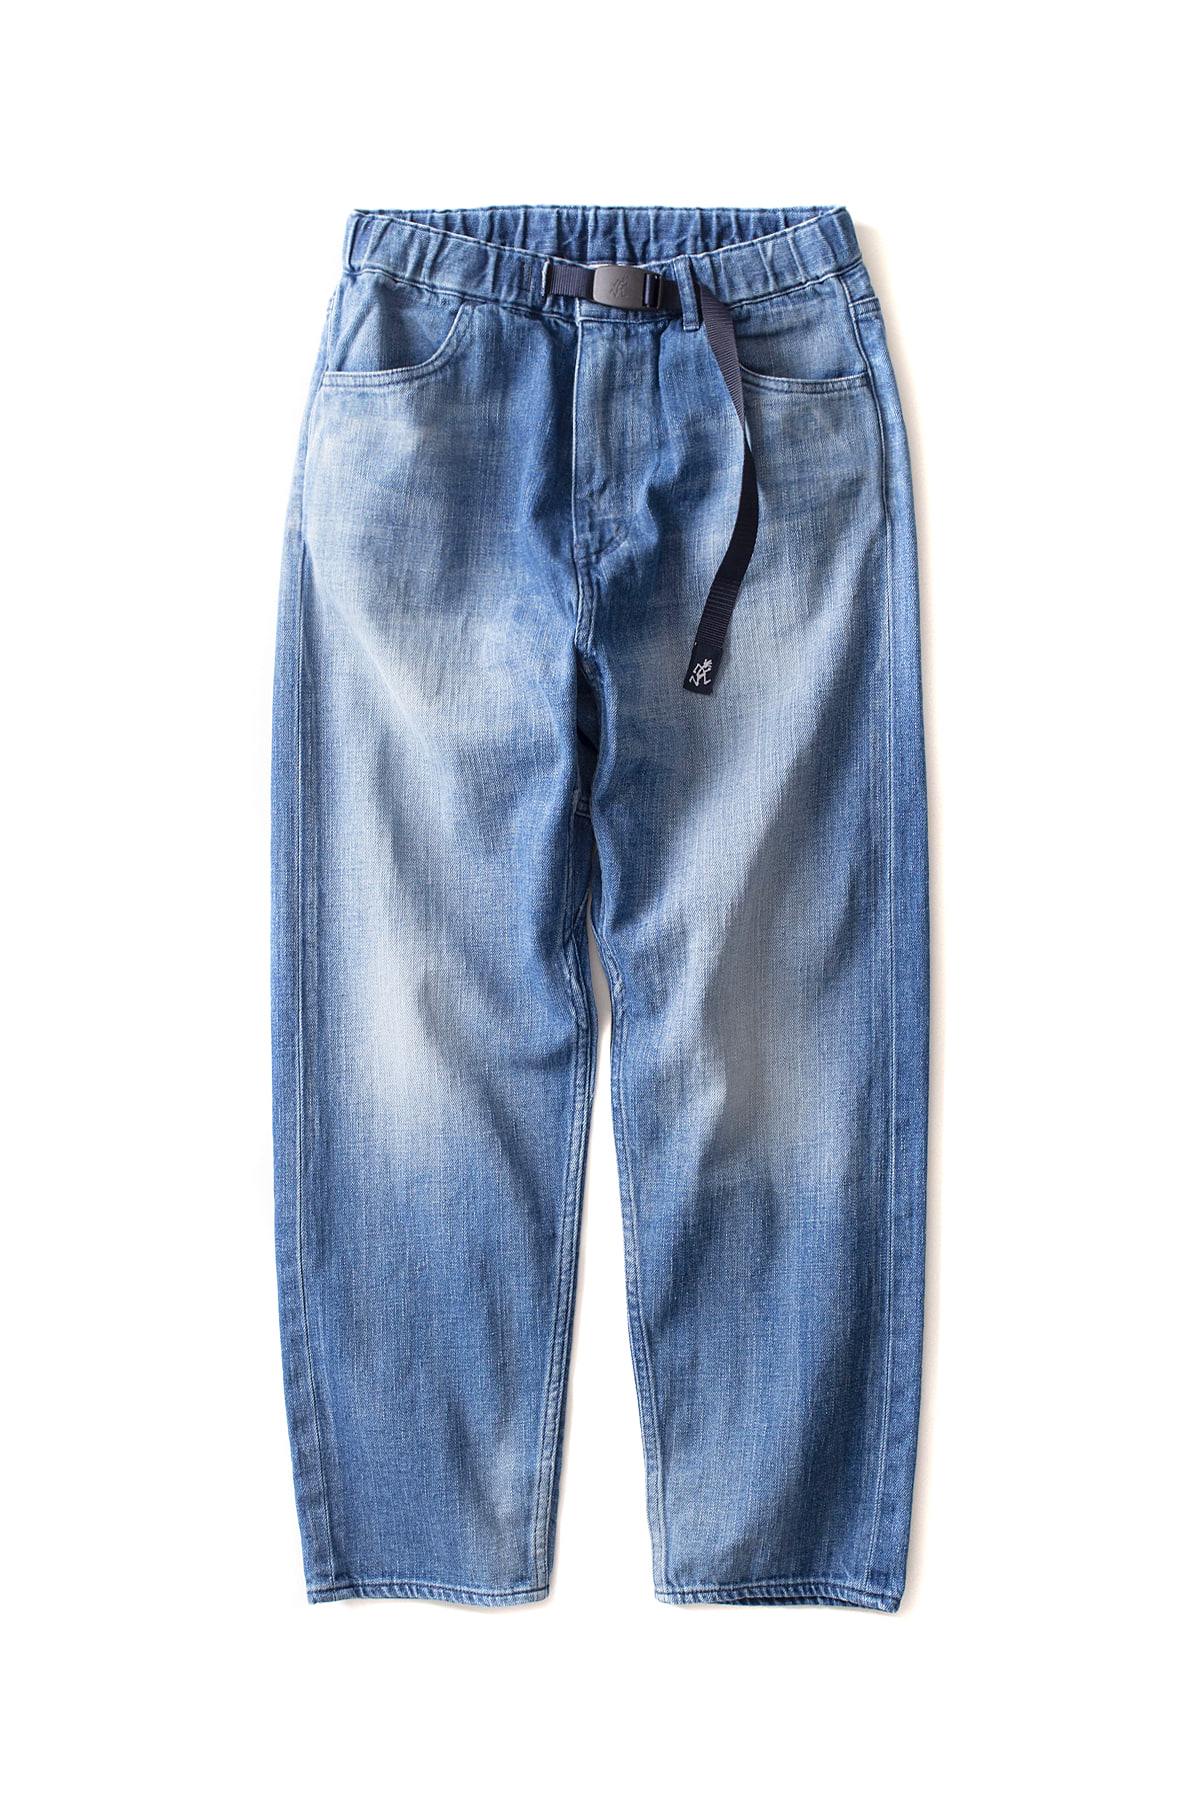 Gramicci x Ordinary fits : Loose Denim Pants (Used)